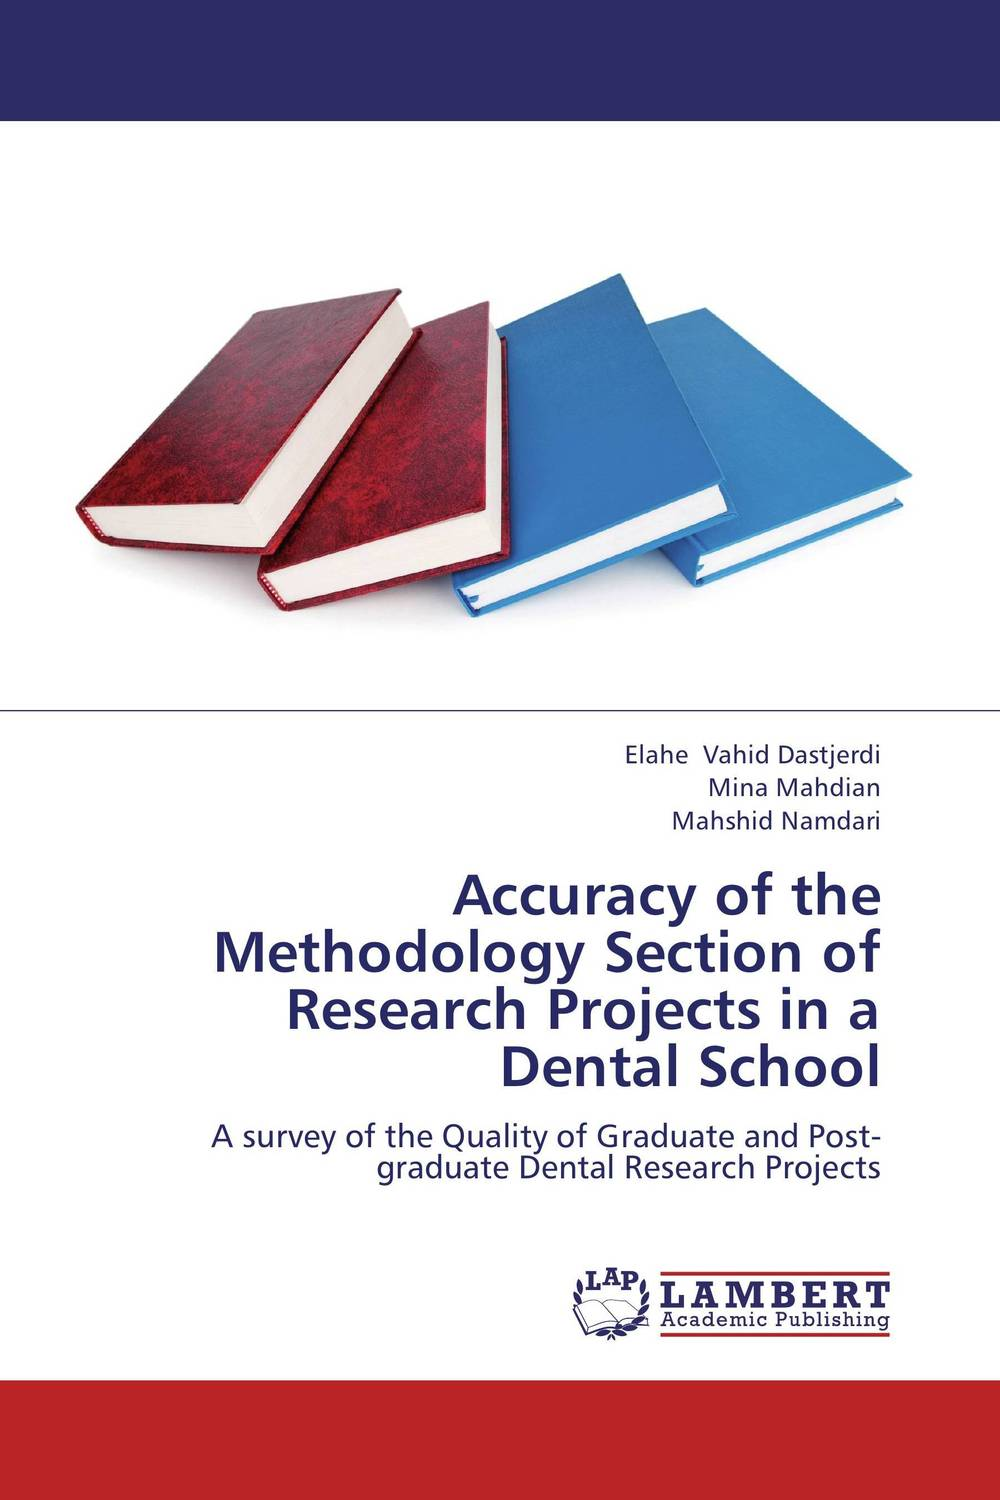 Accuracy of the Methodology Section of Research Projects in a Dental School economic methodology